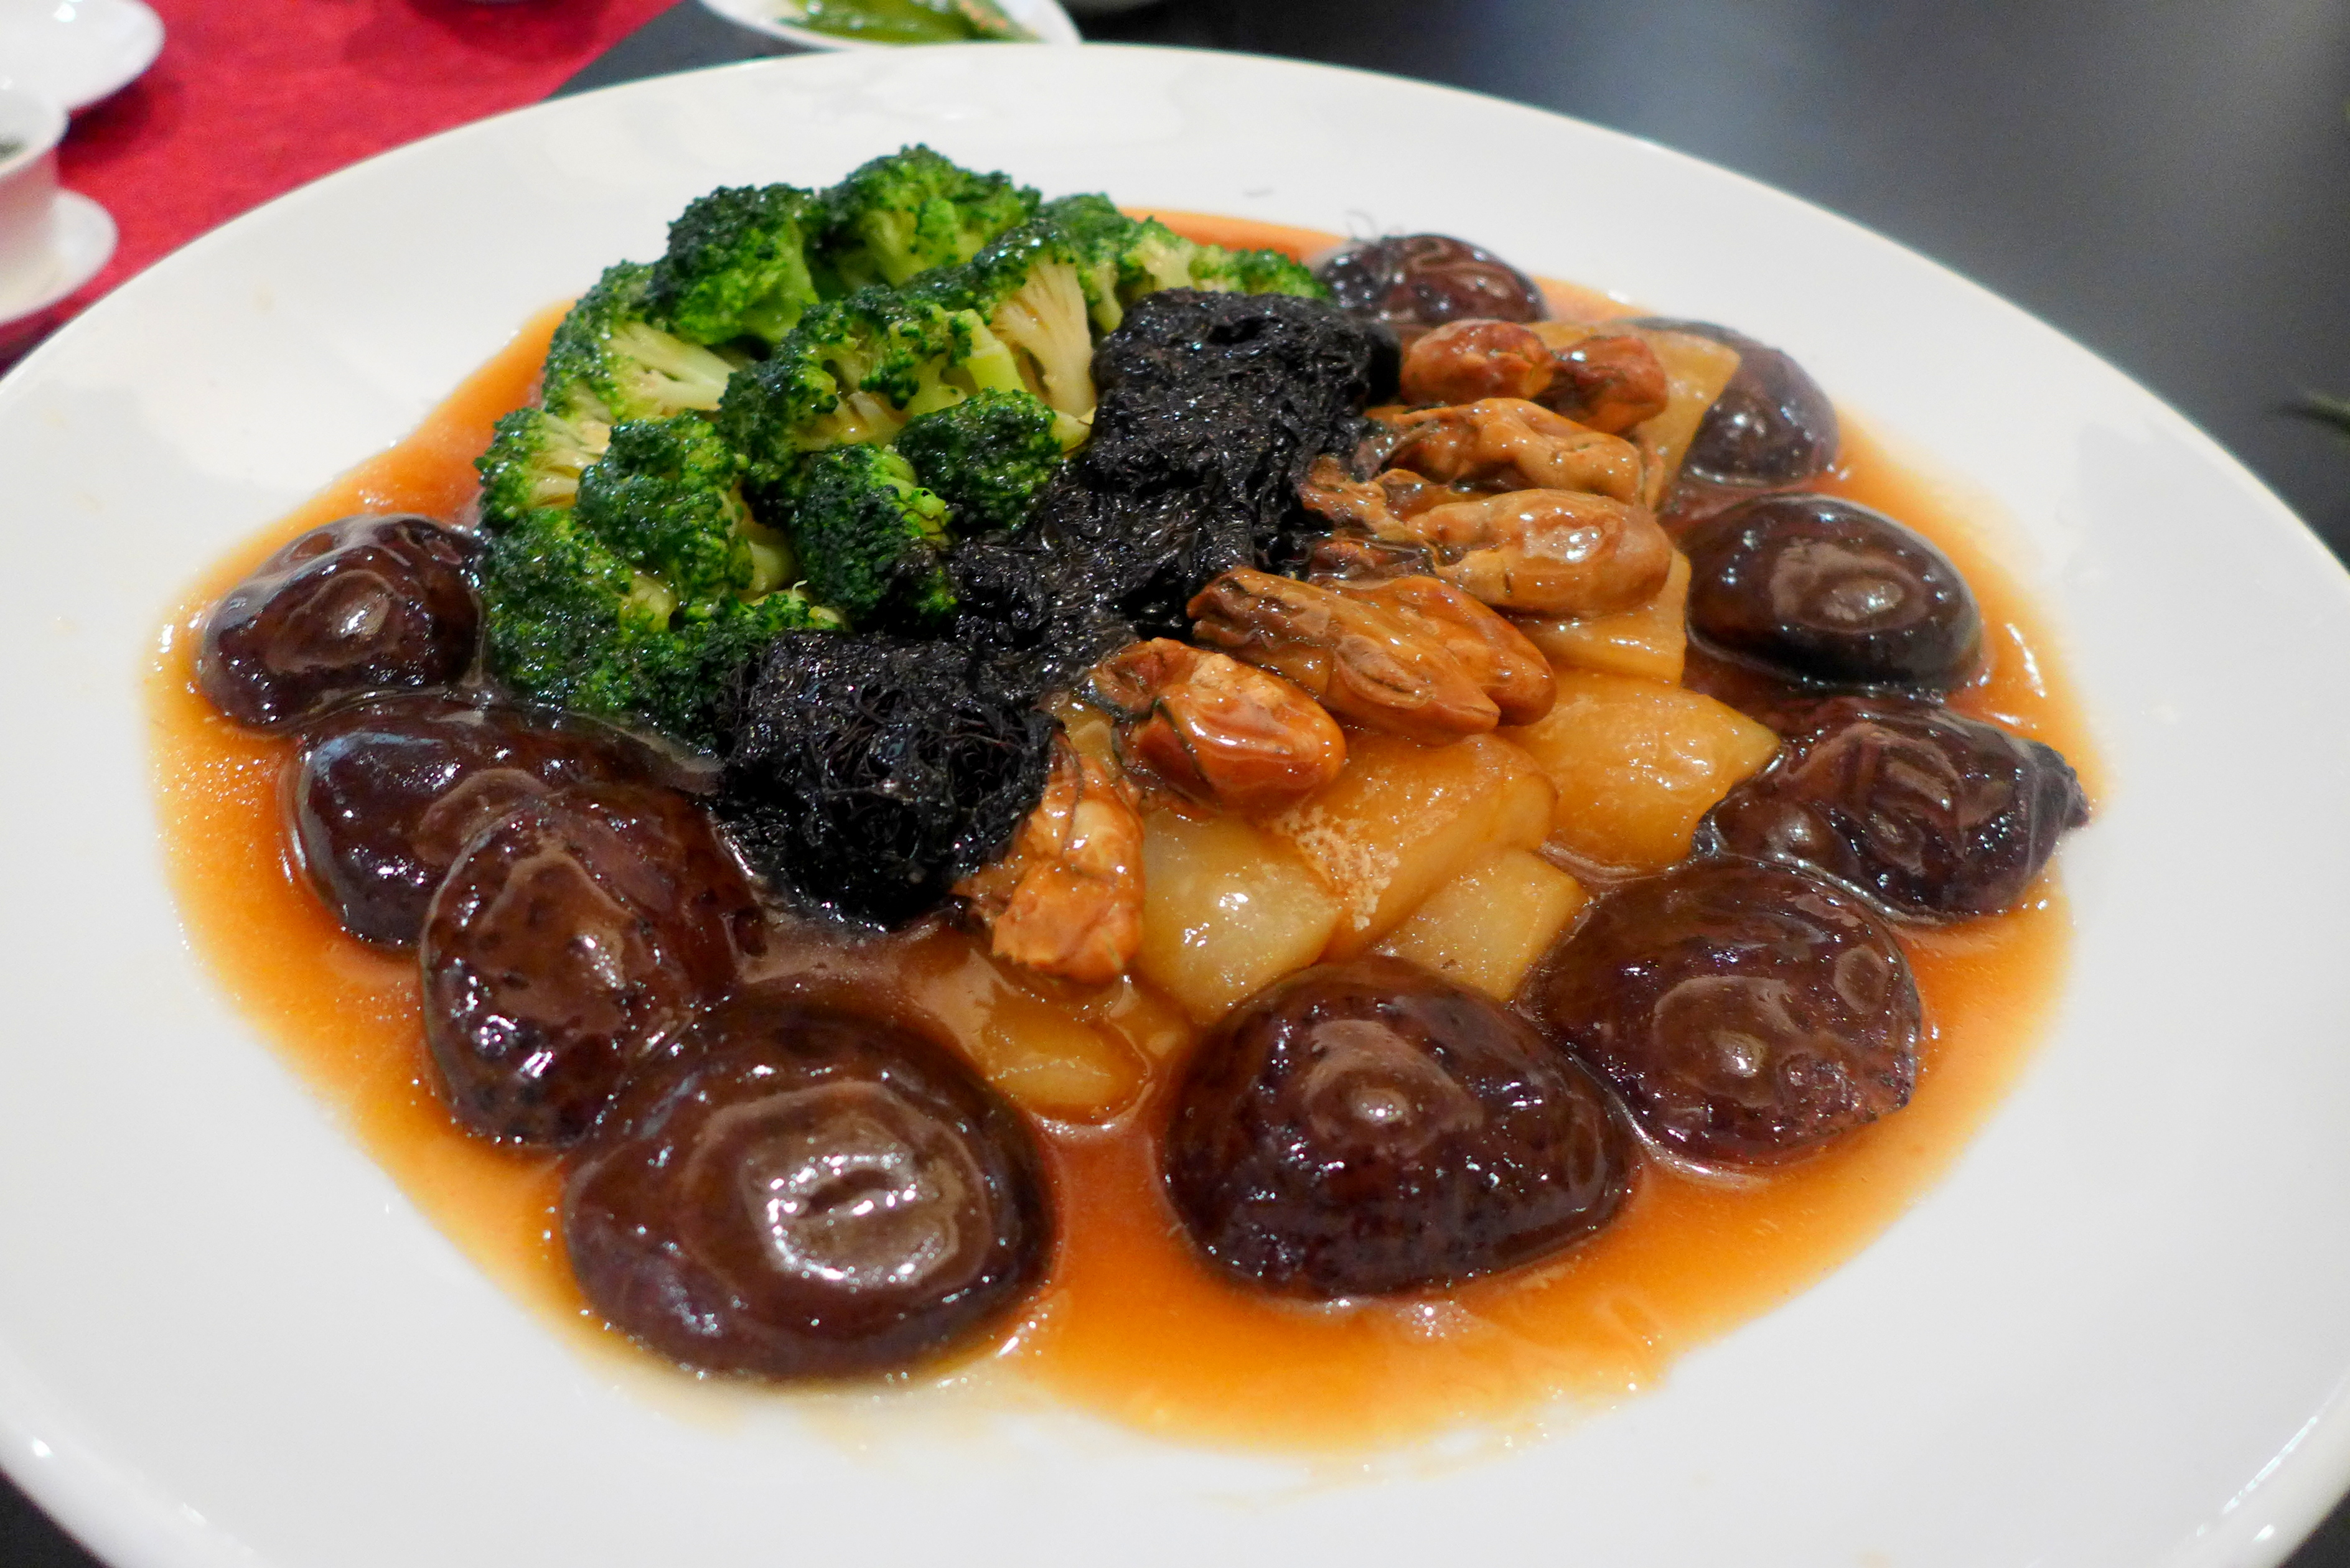 sea braised sea cucumber w dried braised whole abalone and sea braised ...